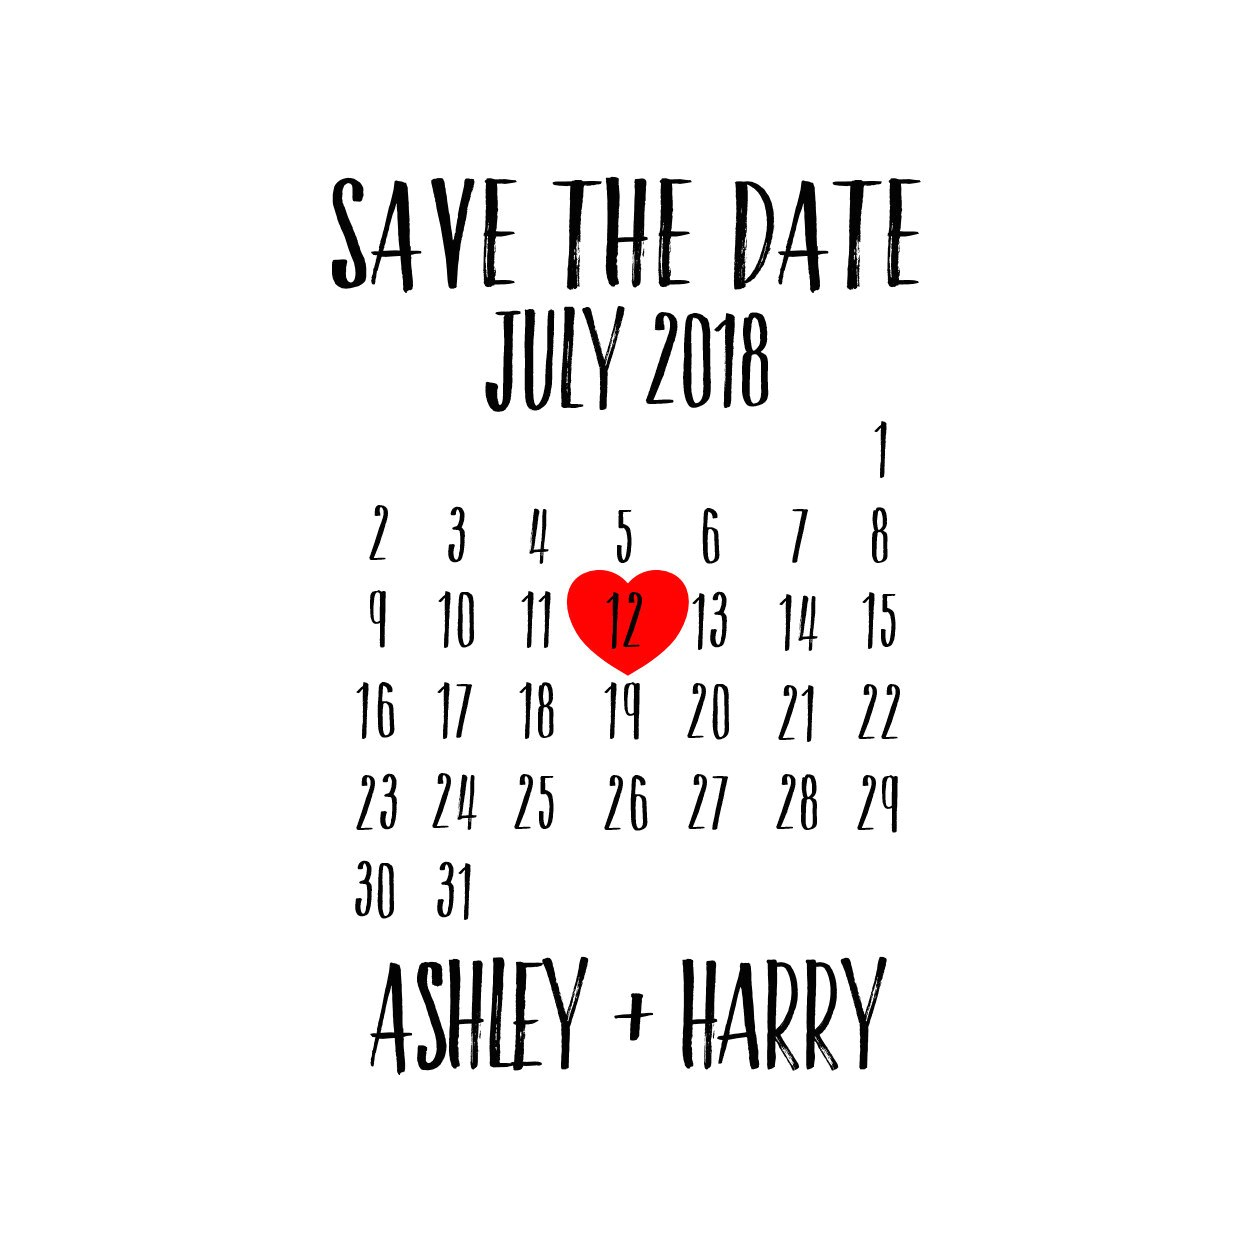 Save the Date Calendar Template 2018 Custom Save the Date Calendar Stamp Personalized Stamp